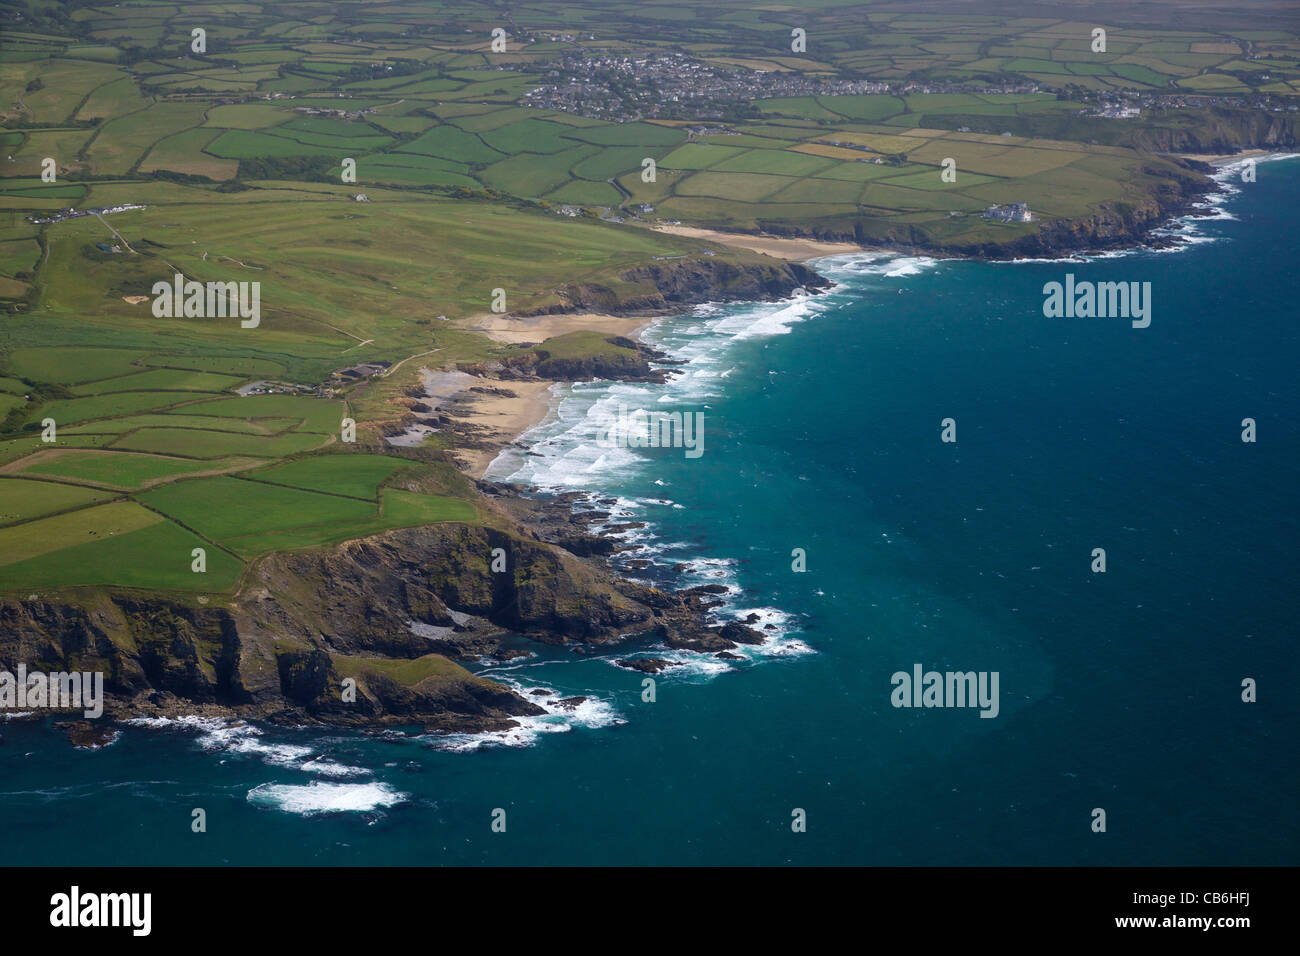 Aerial view of Poldhu Cove looking south to Mullion, Lizard Peninsula, in summer sun, Cornwall,Southwest  England, - Stock Image